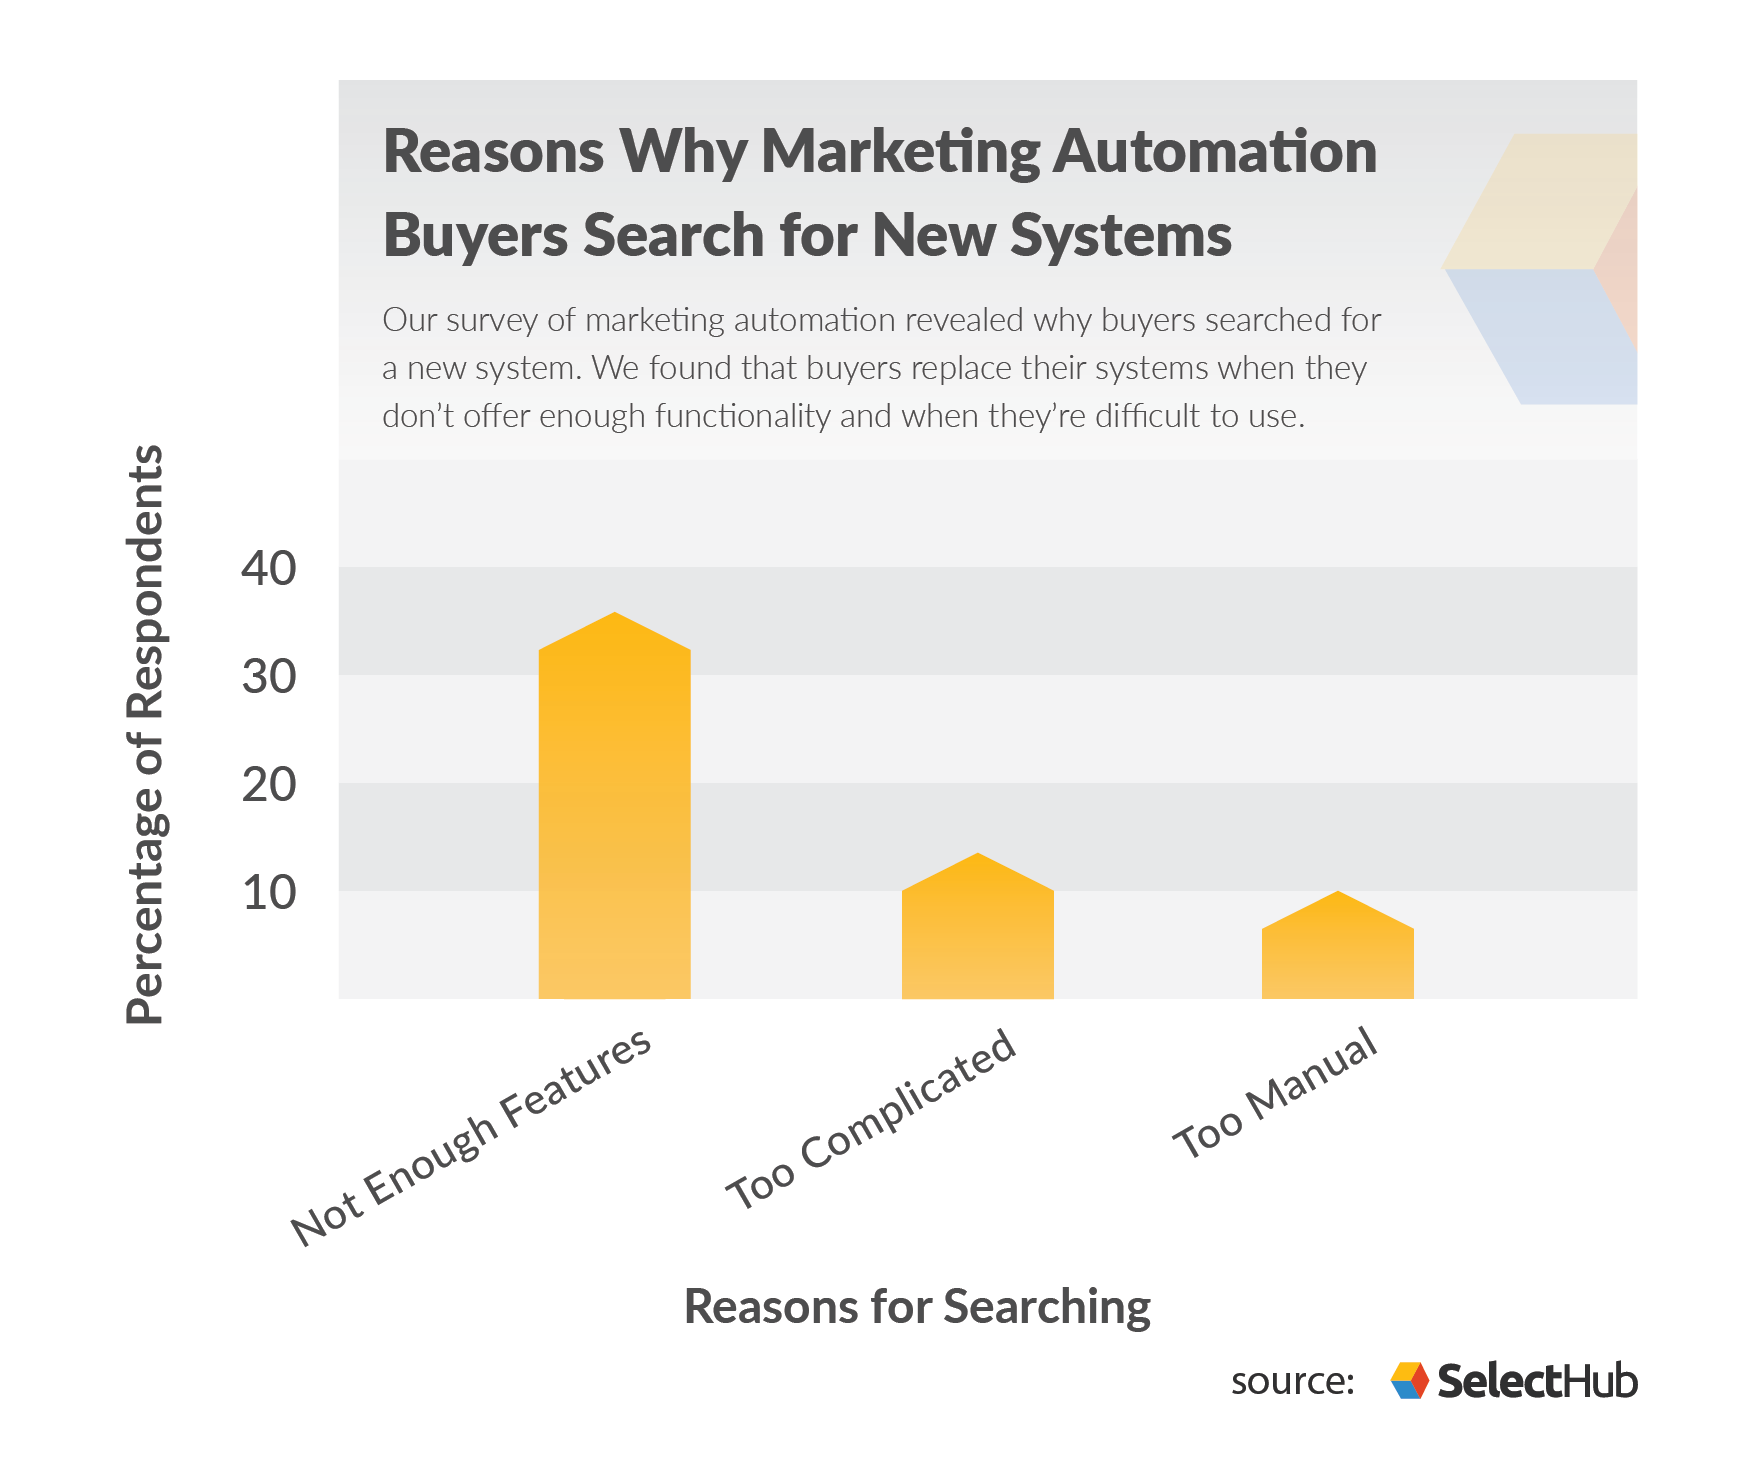 Marketing Automation Buying Trends Reasons for Searching